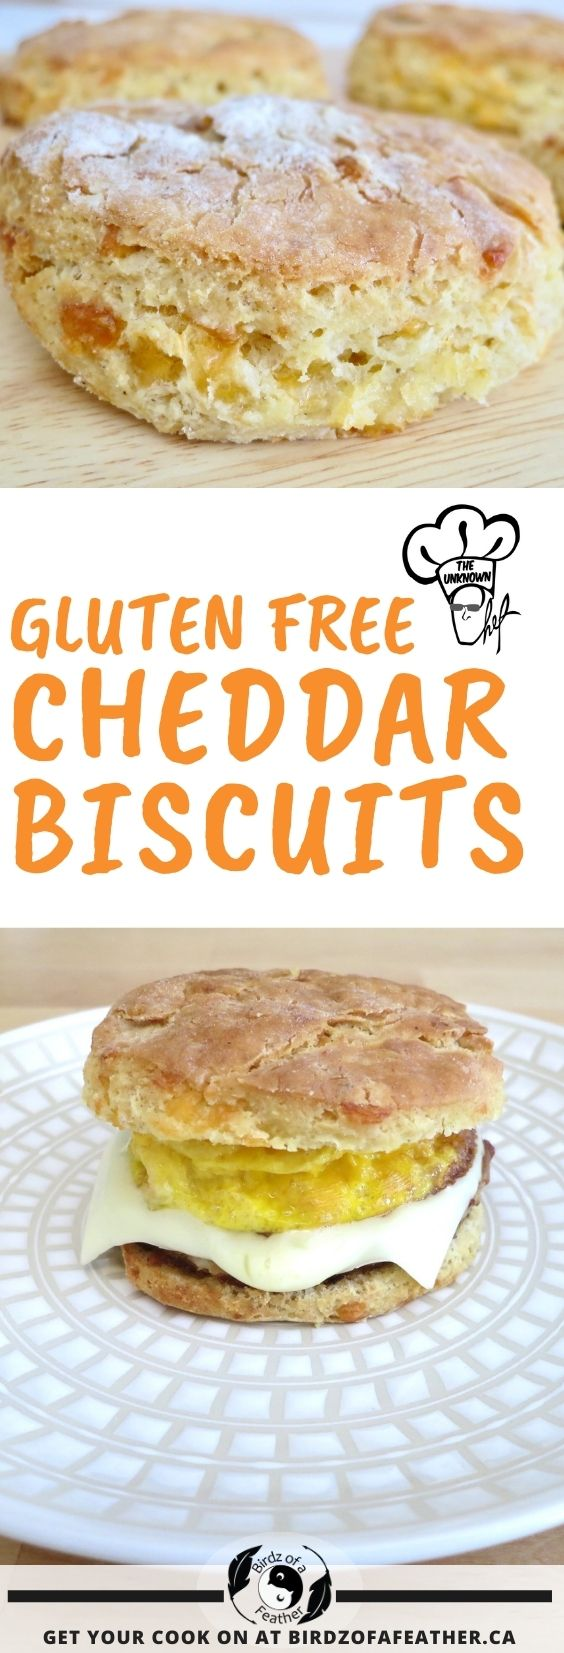 These gluten free cheddar biscuits bake up light and fluffy with the addition of Expandex! Bring on the sausage breakfast sandwiches! Birdz of a Feather | gluten free cheddar biscuits easy | cheddar biscuits | cheddar biscuit recipe | gluten free cheddar biscuits recipe | biscuits | biscuits homemade | biscuits gluten free | expandex recipes | expandex gluten free | expandex modified tapioca starch